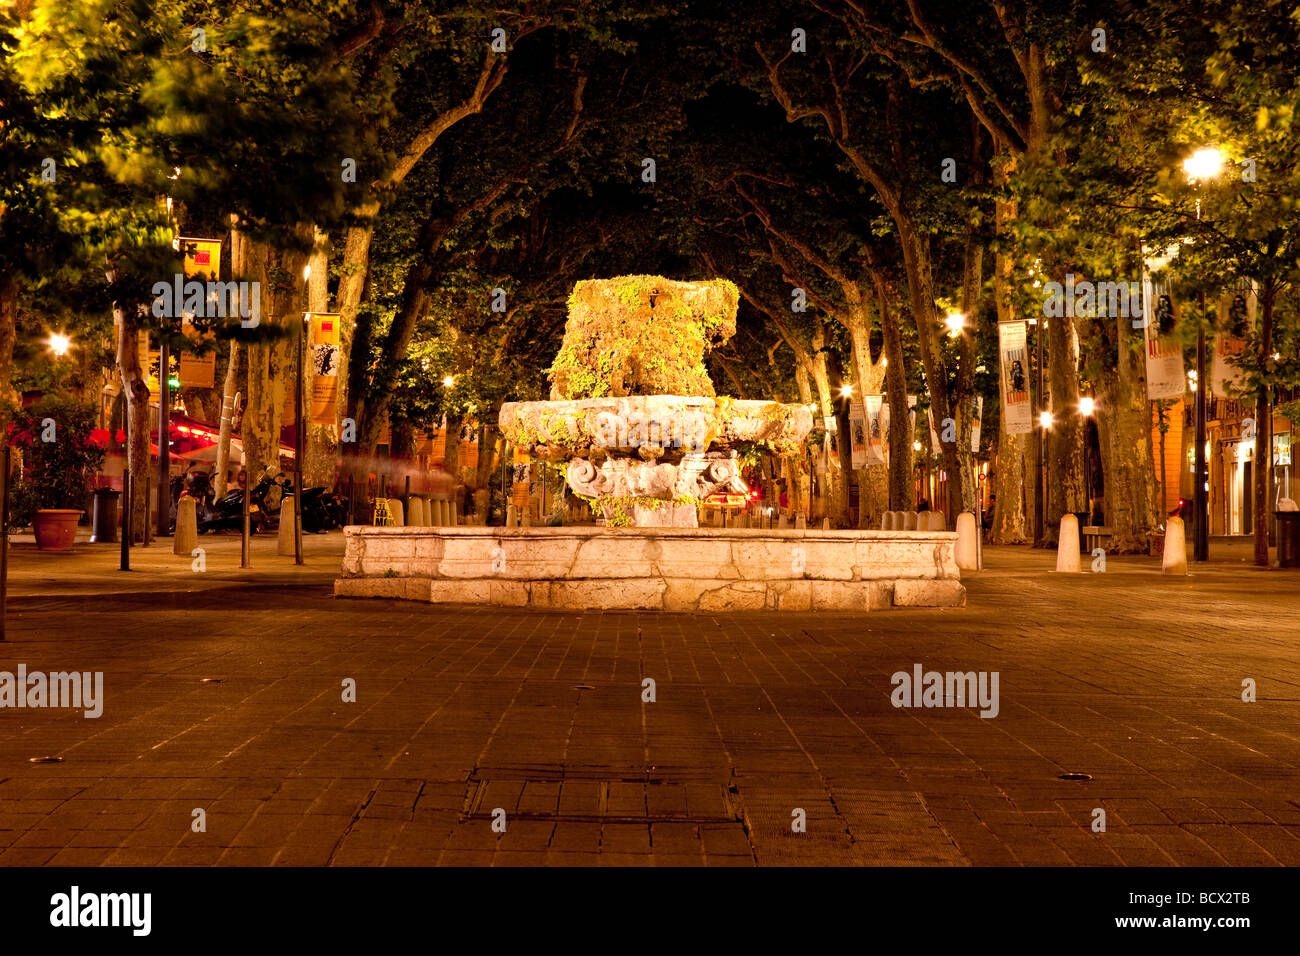 Fountain in Aix en-Provence, France - Stock Image